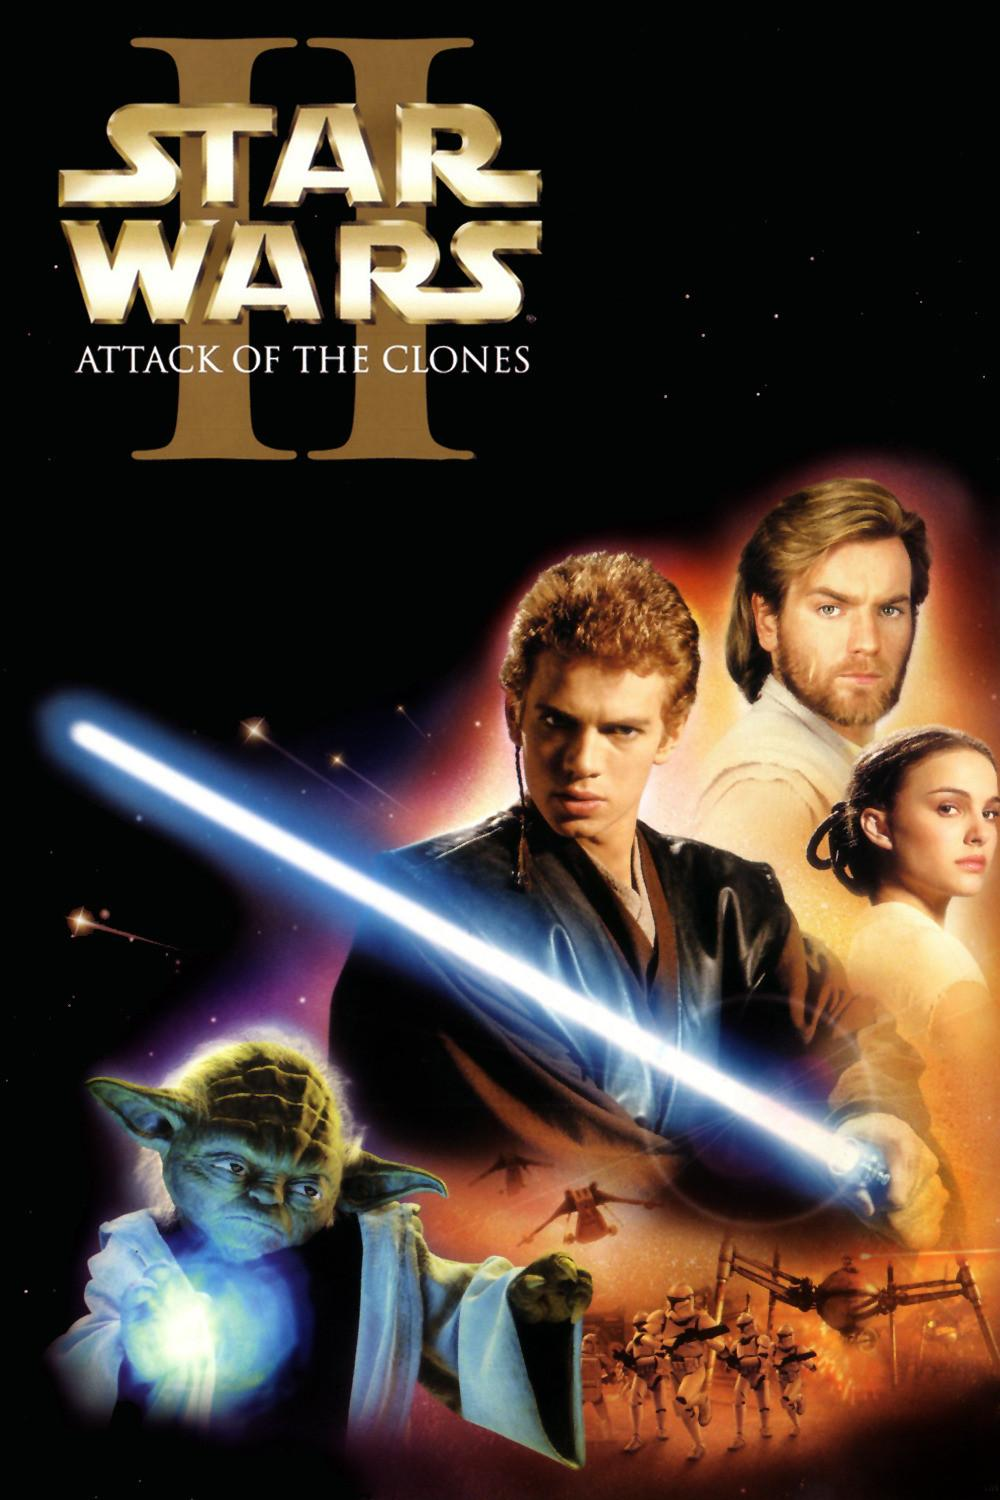 star wars 1977 movie download in dual audio 480p